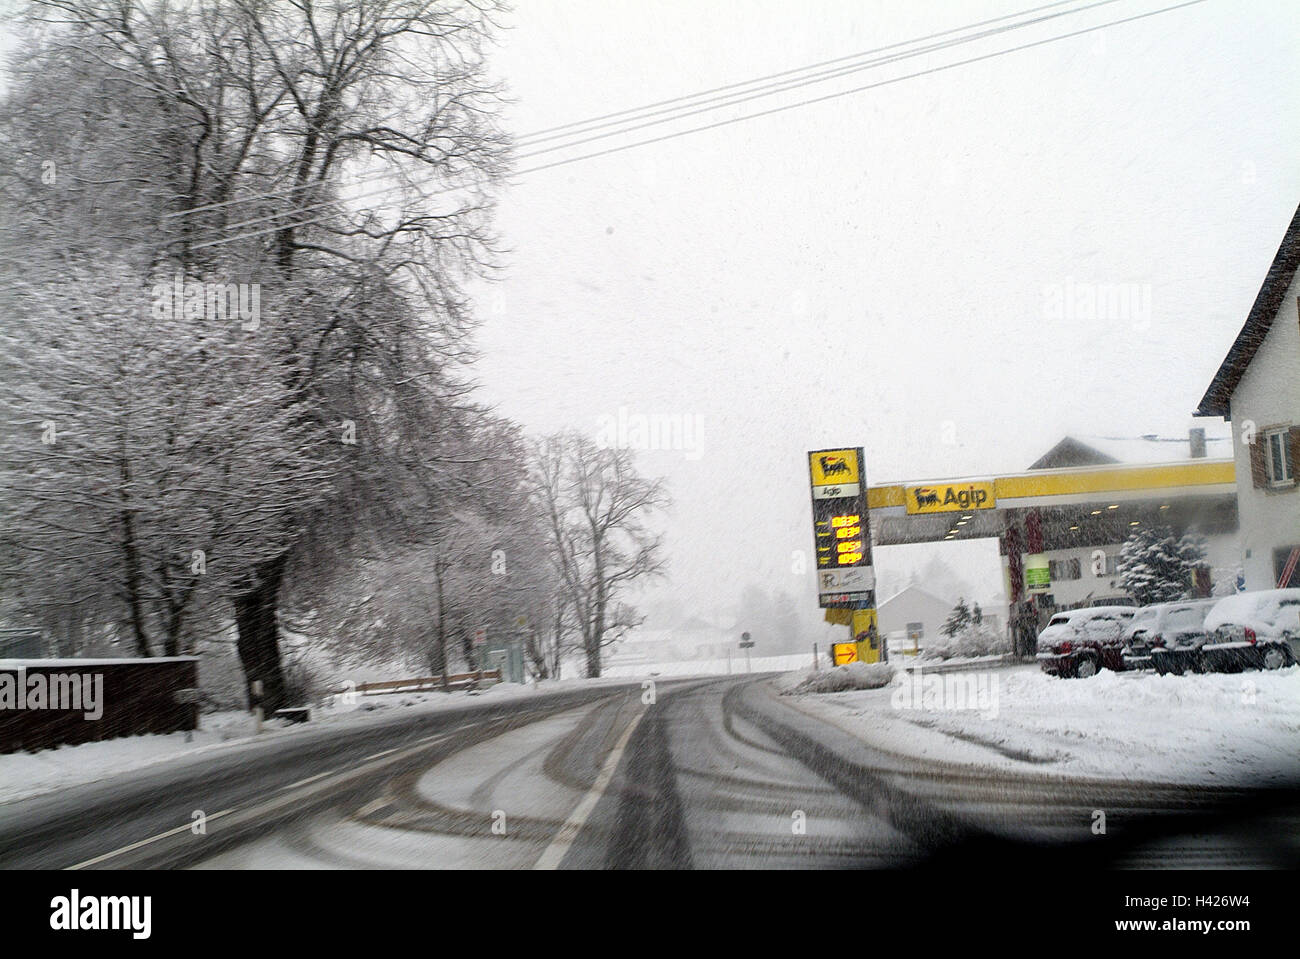 Place, junction, filling station, street relations, wintry, traffic facility, traffic route, traffic, street, traffic, - Stock Image